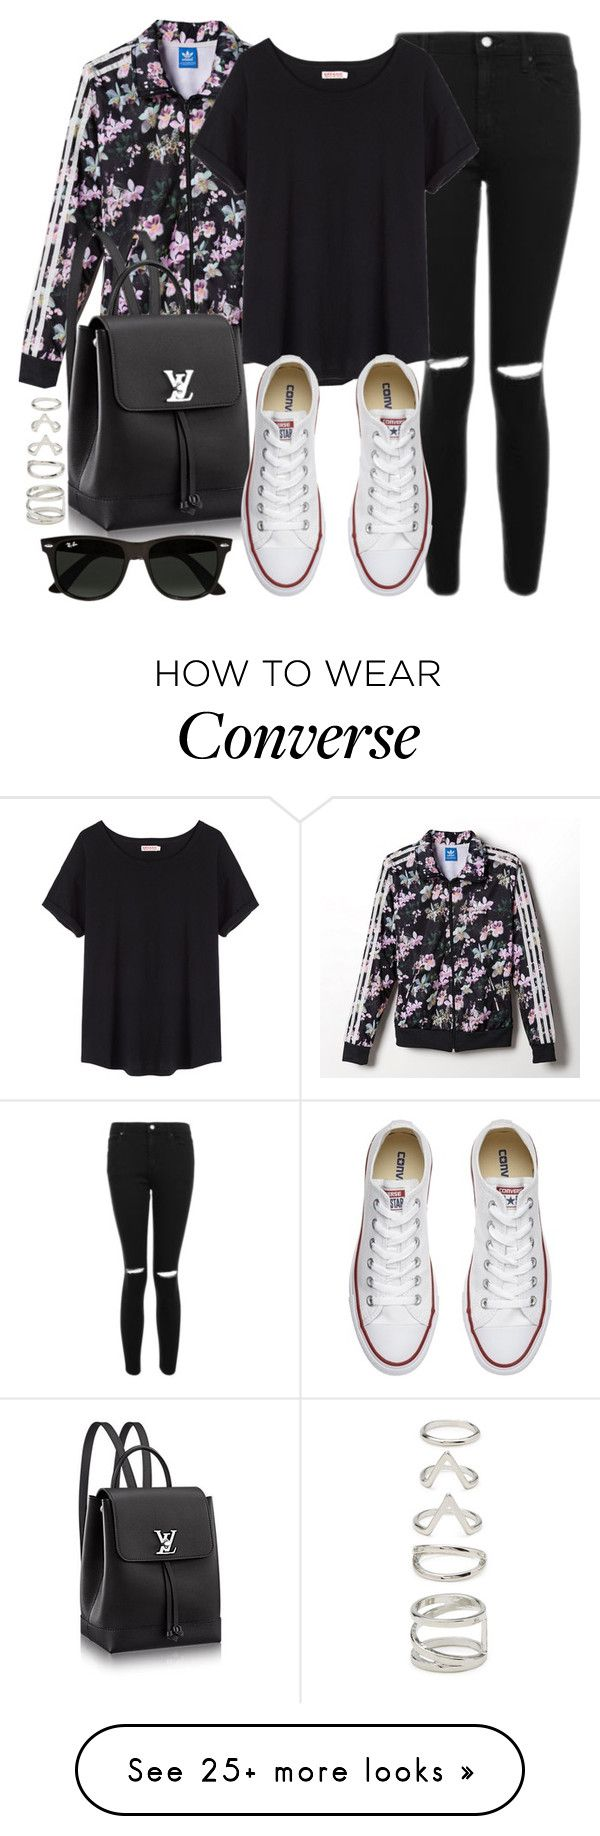 """""""Style #11643"""" by vany-alvarado on Polyvore featuring Topshop, adidas, Organic by John Patrick, Converse, Ray-Ban and Forever 21"""